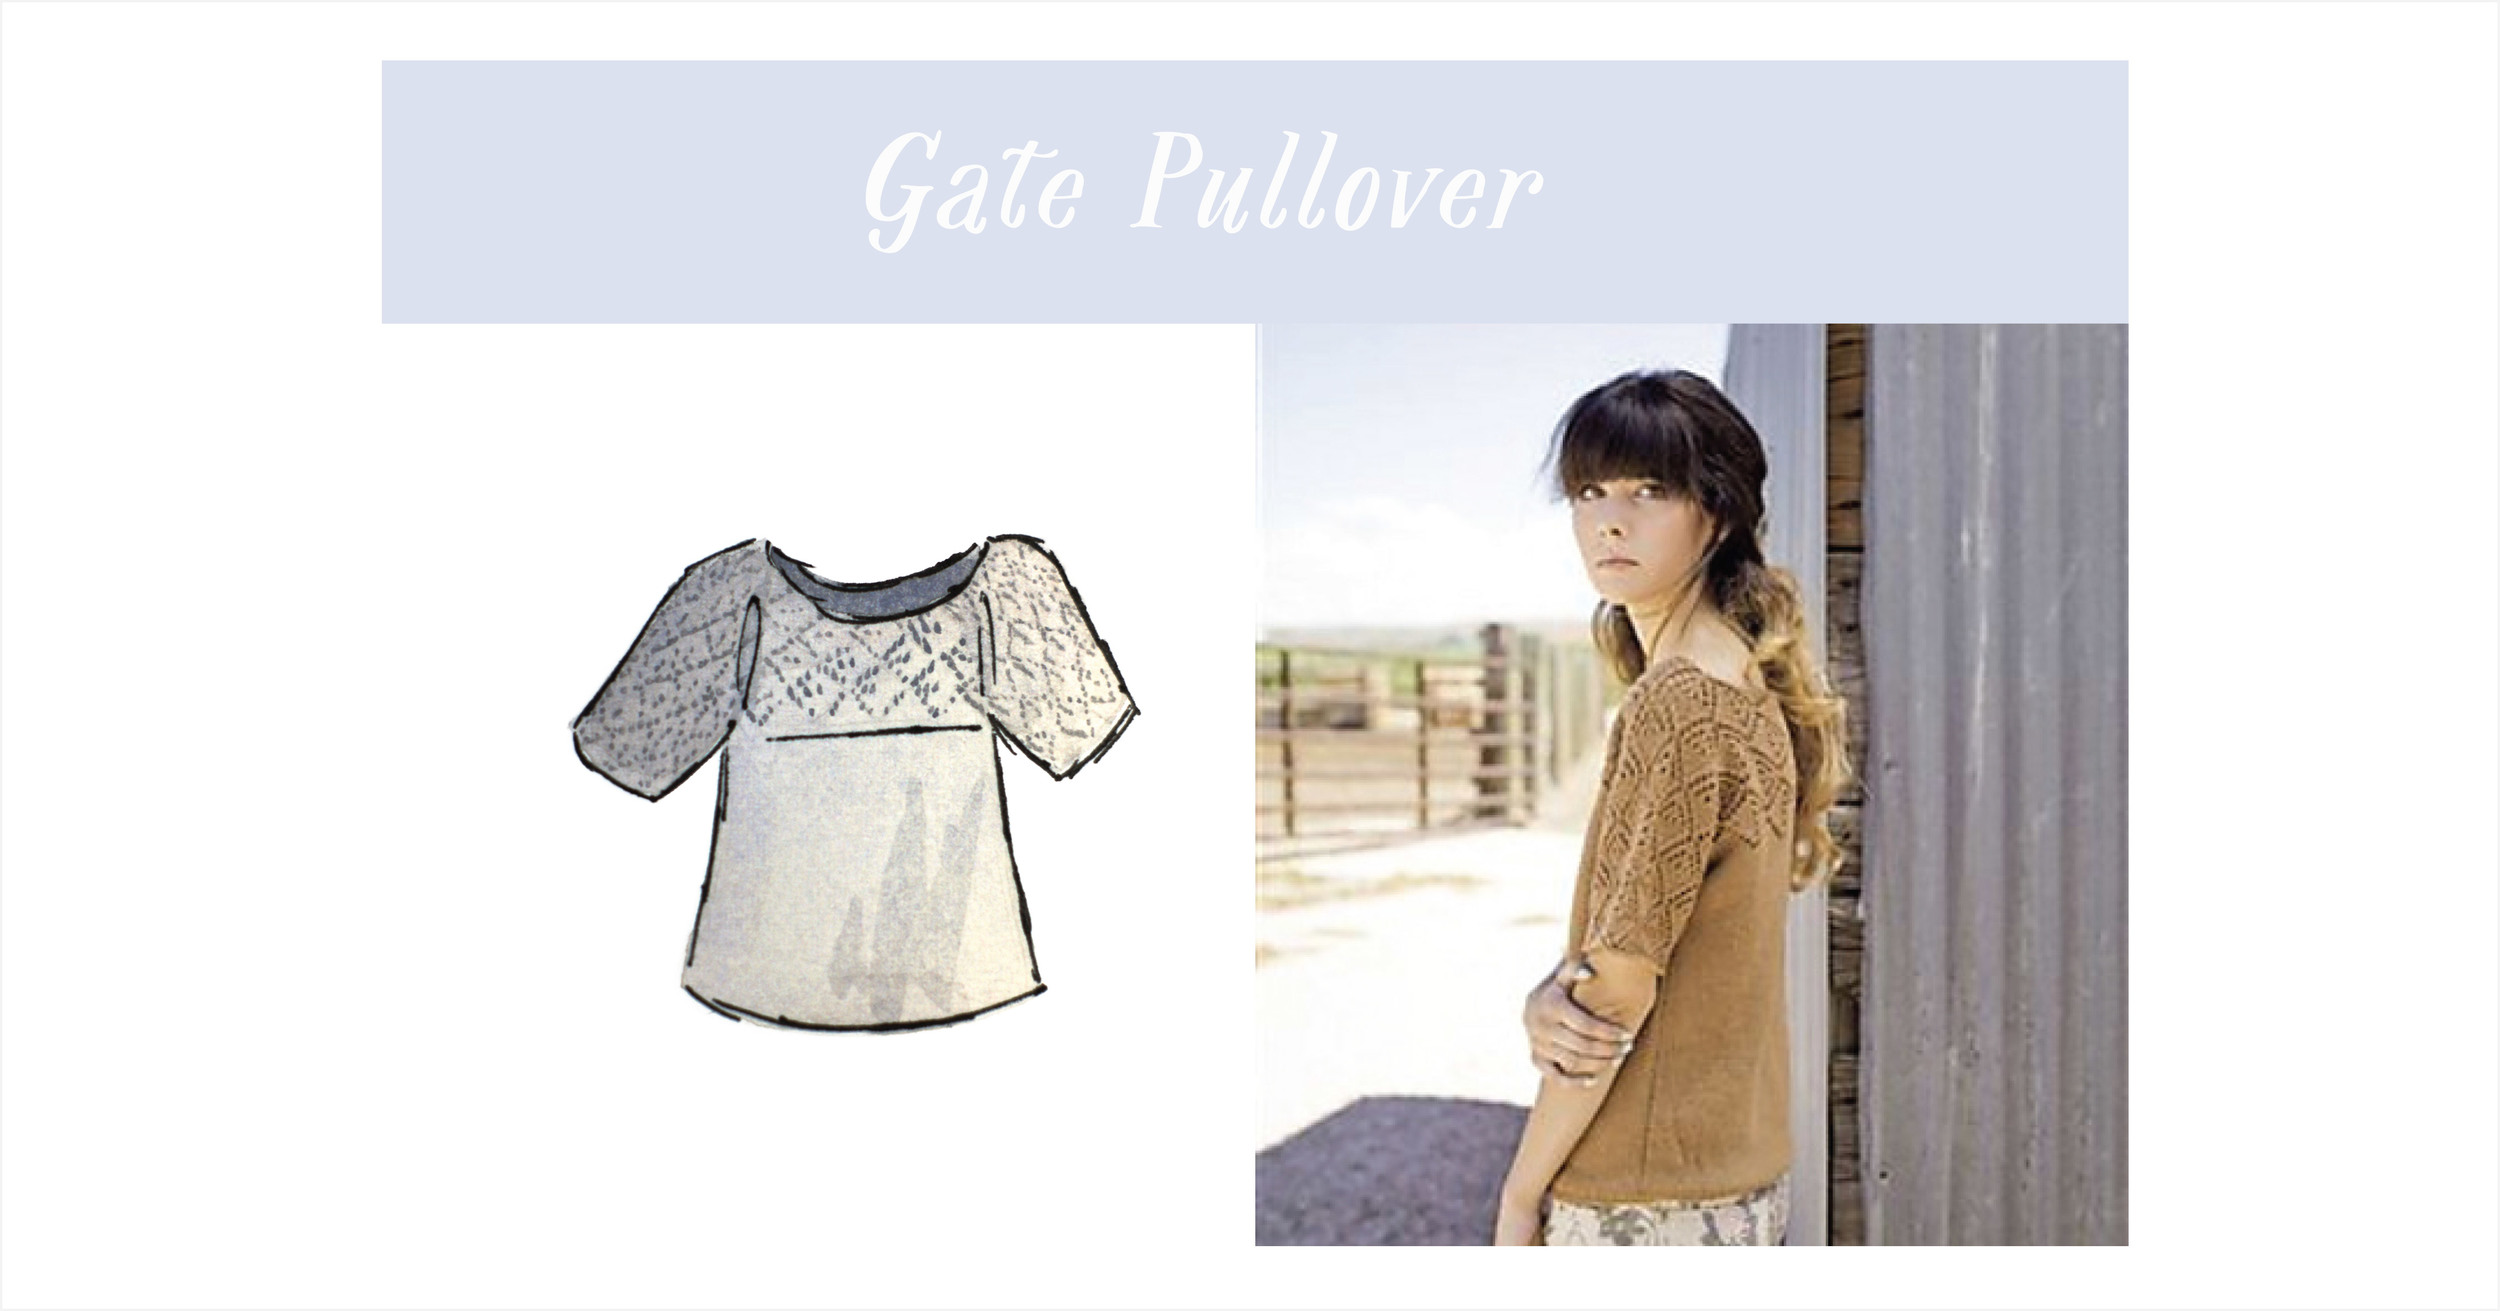 Acanthus House | Gate Pullover Second Update